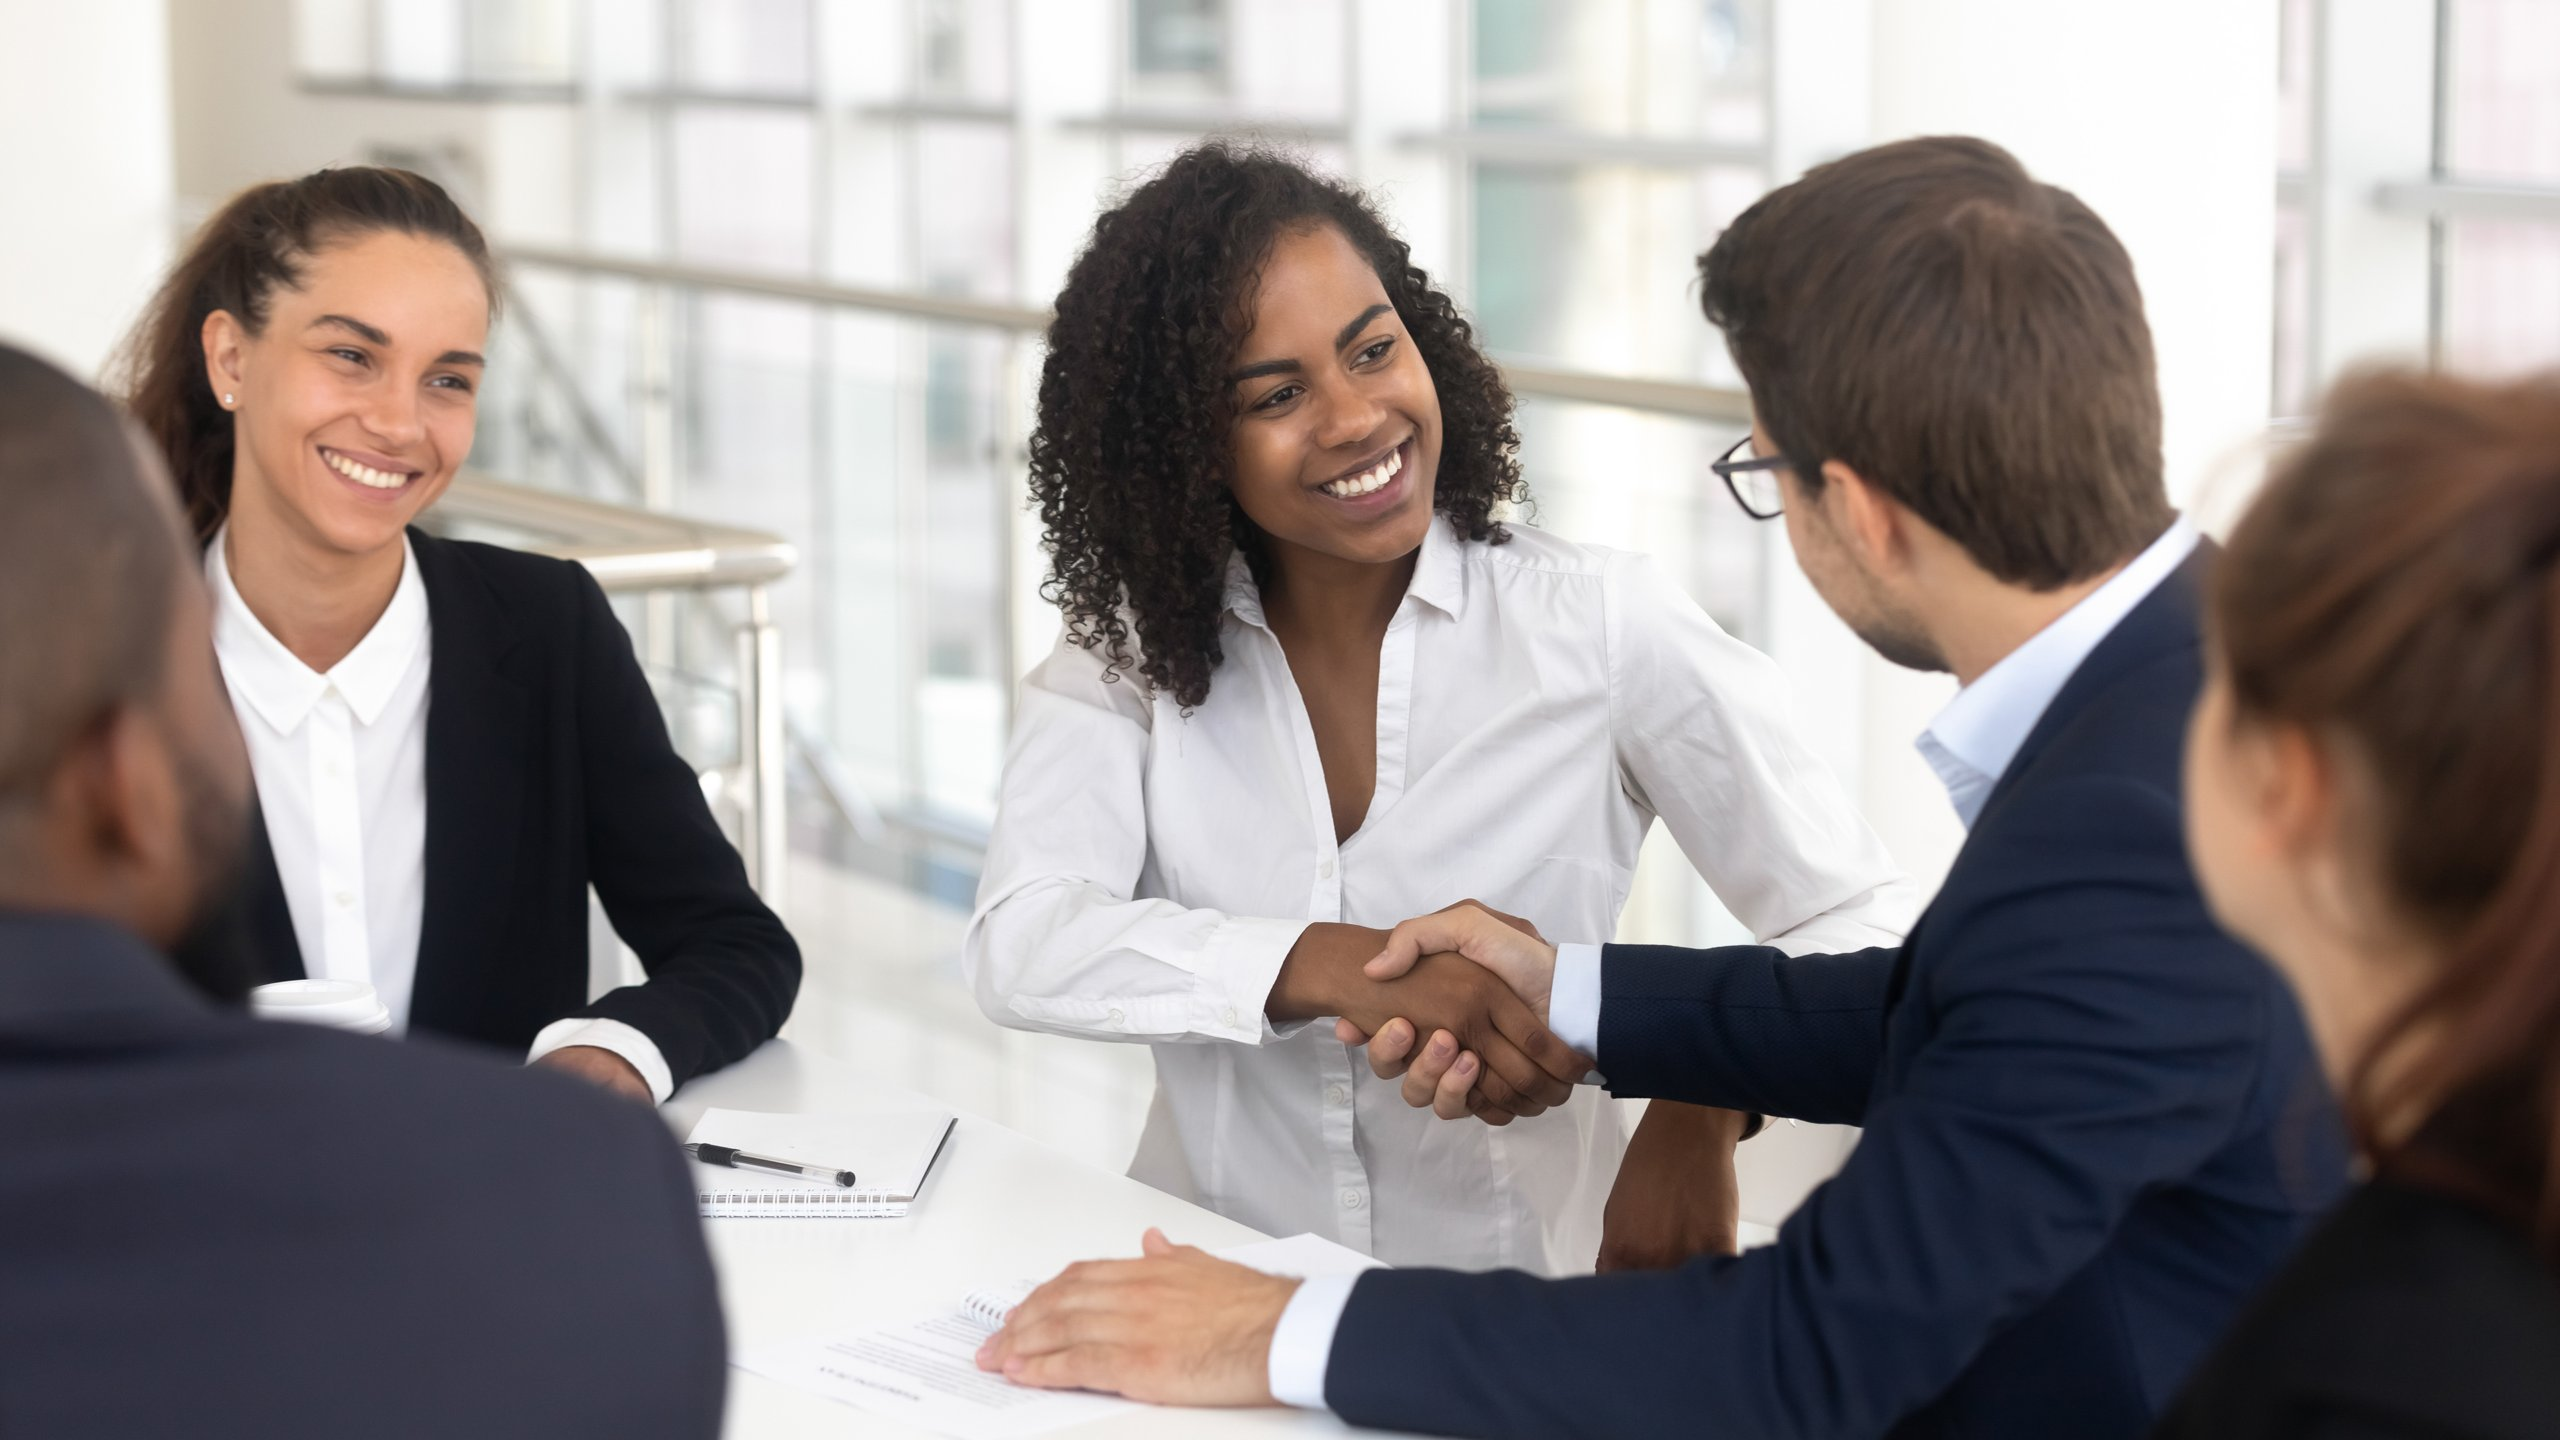 5 people in business casual clothing, man and woman shaking hands